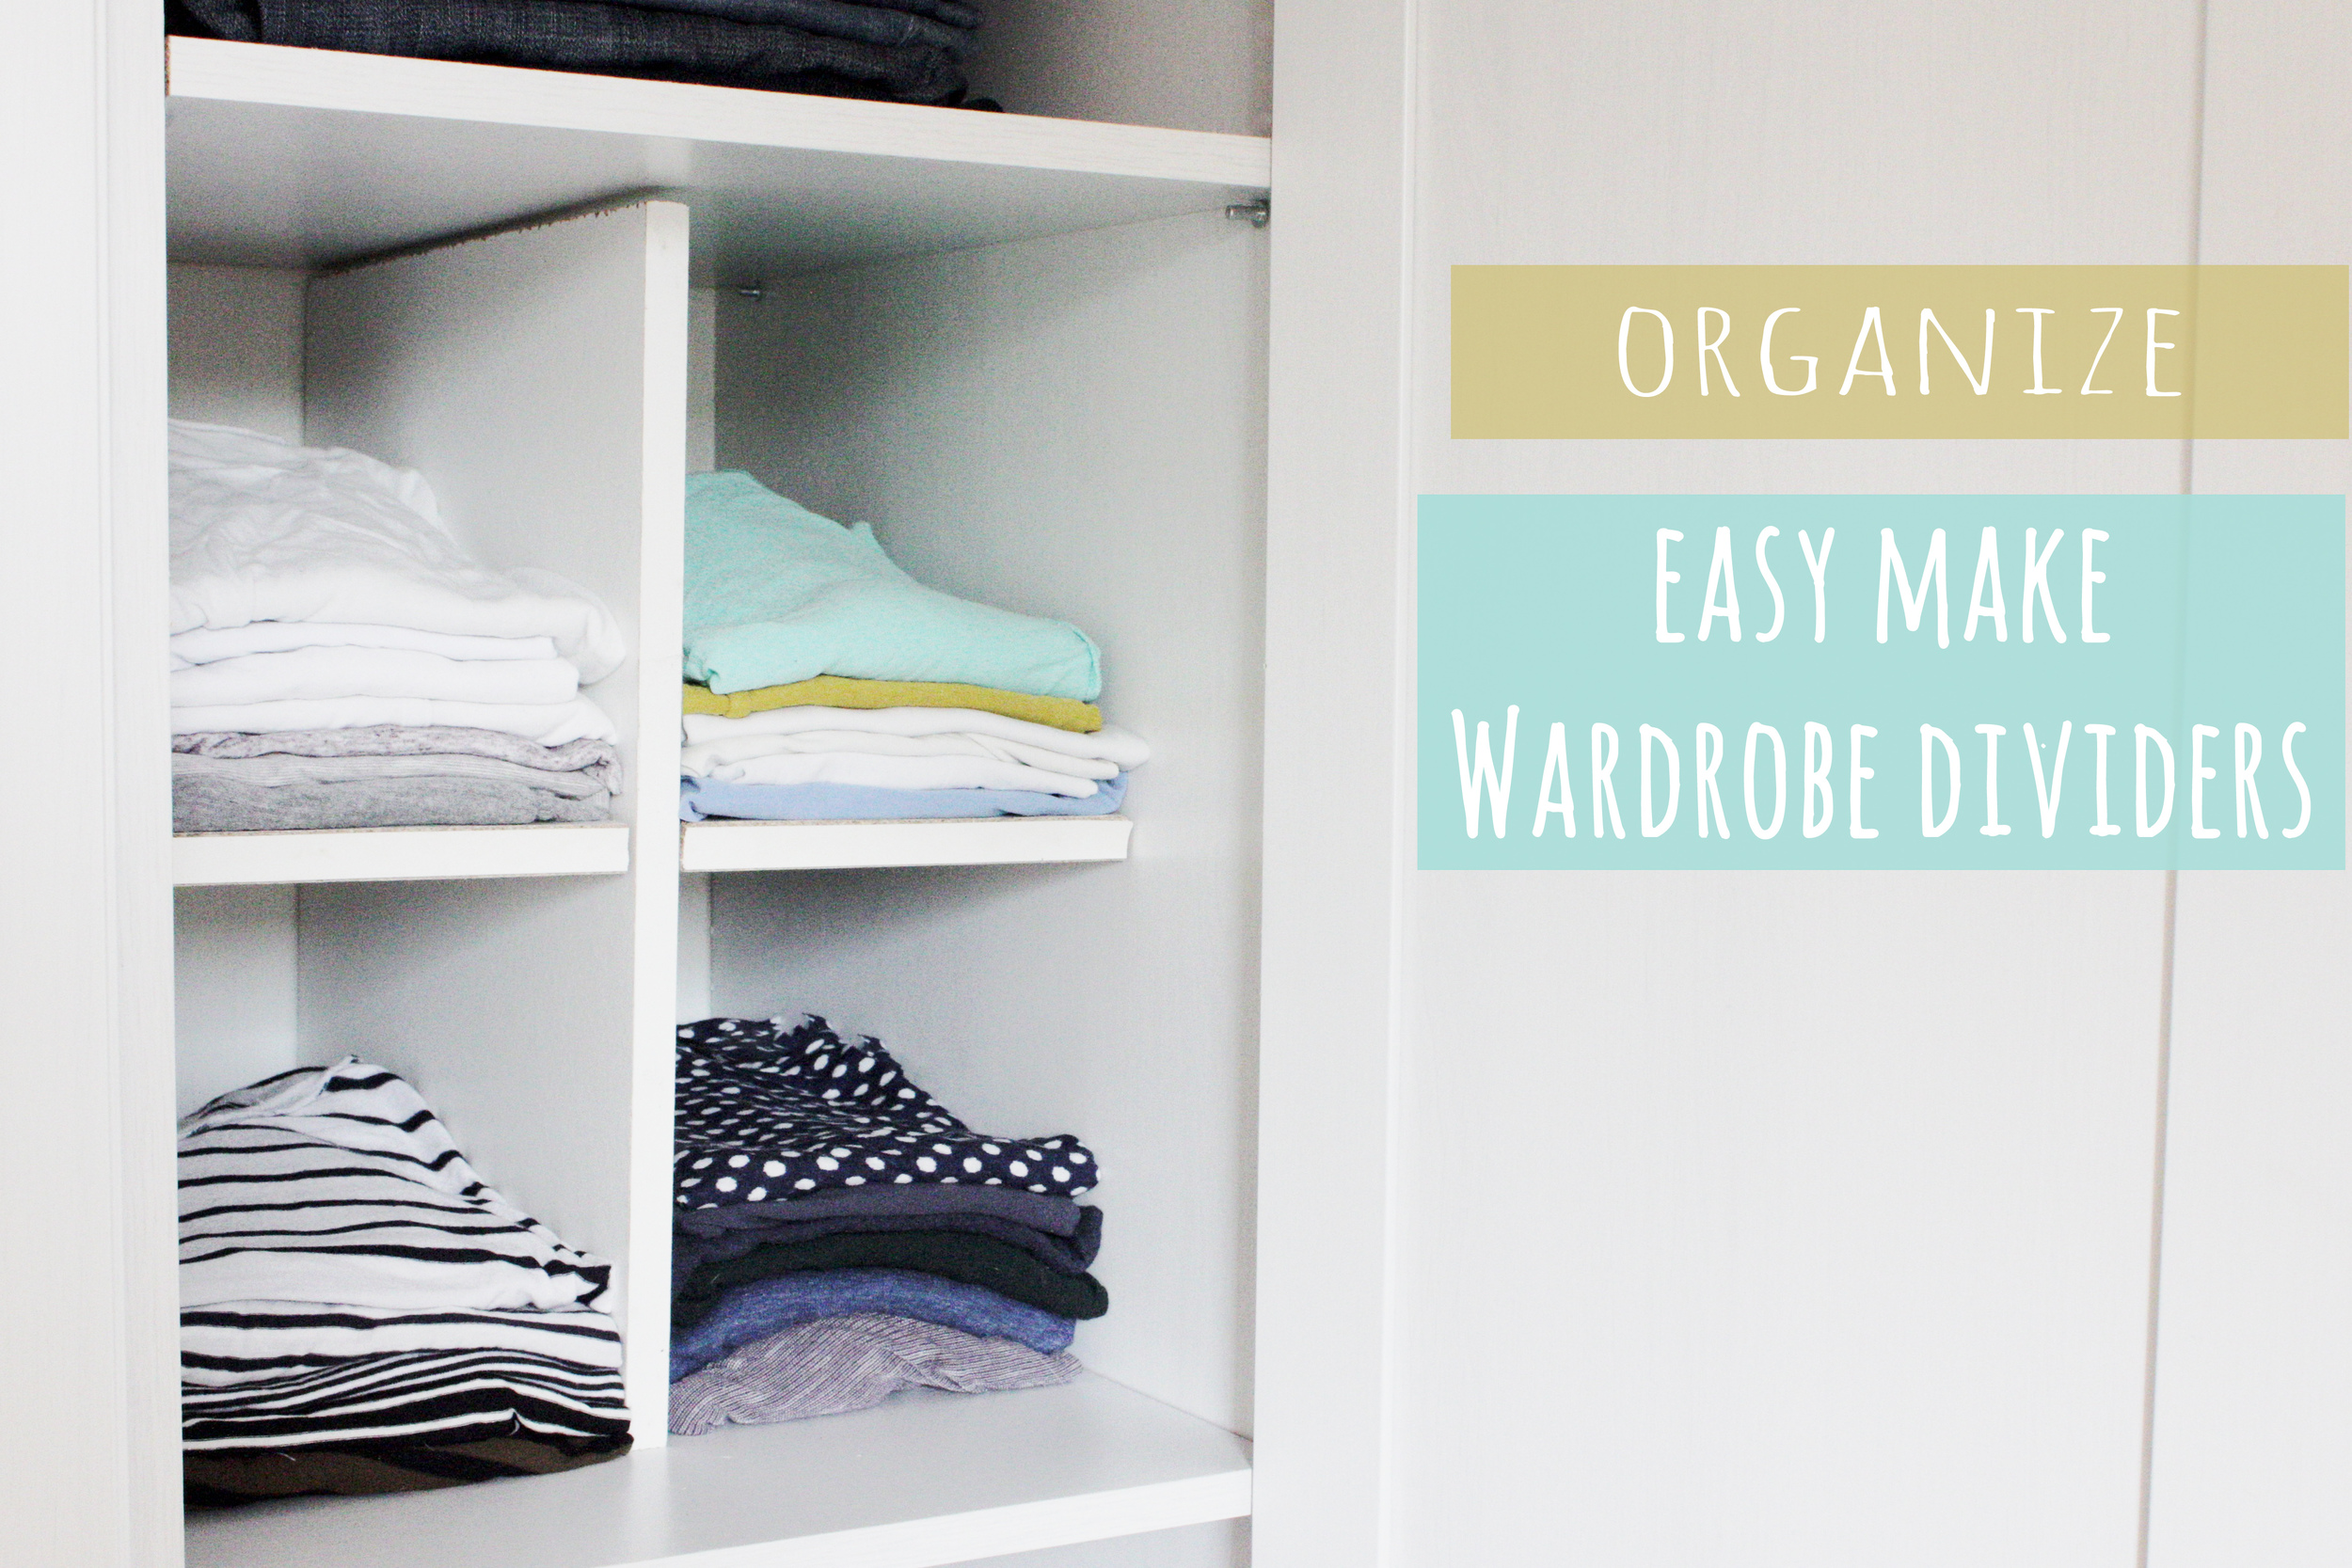 wardrobe divider diy. keep your storage organised with this easy make by Hester's Handmade Home